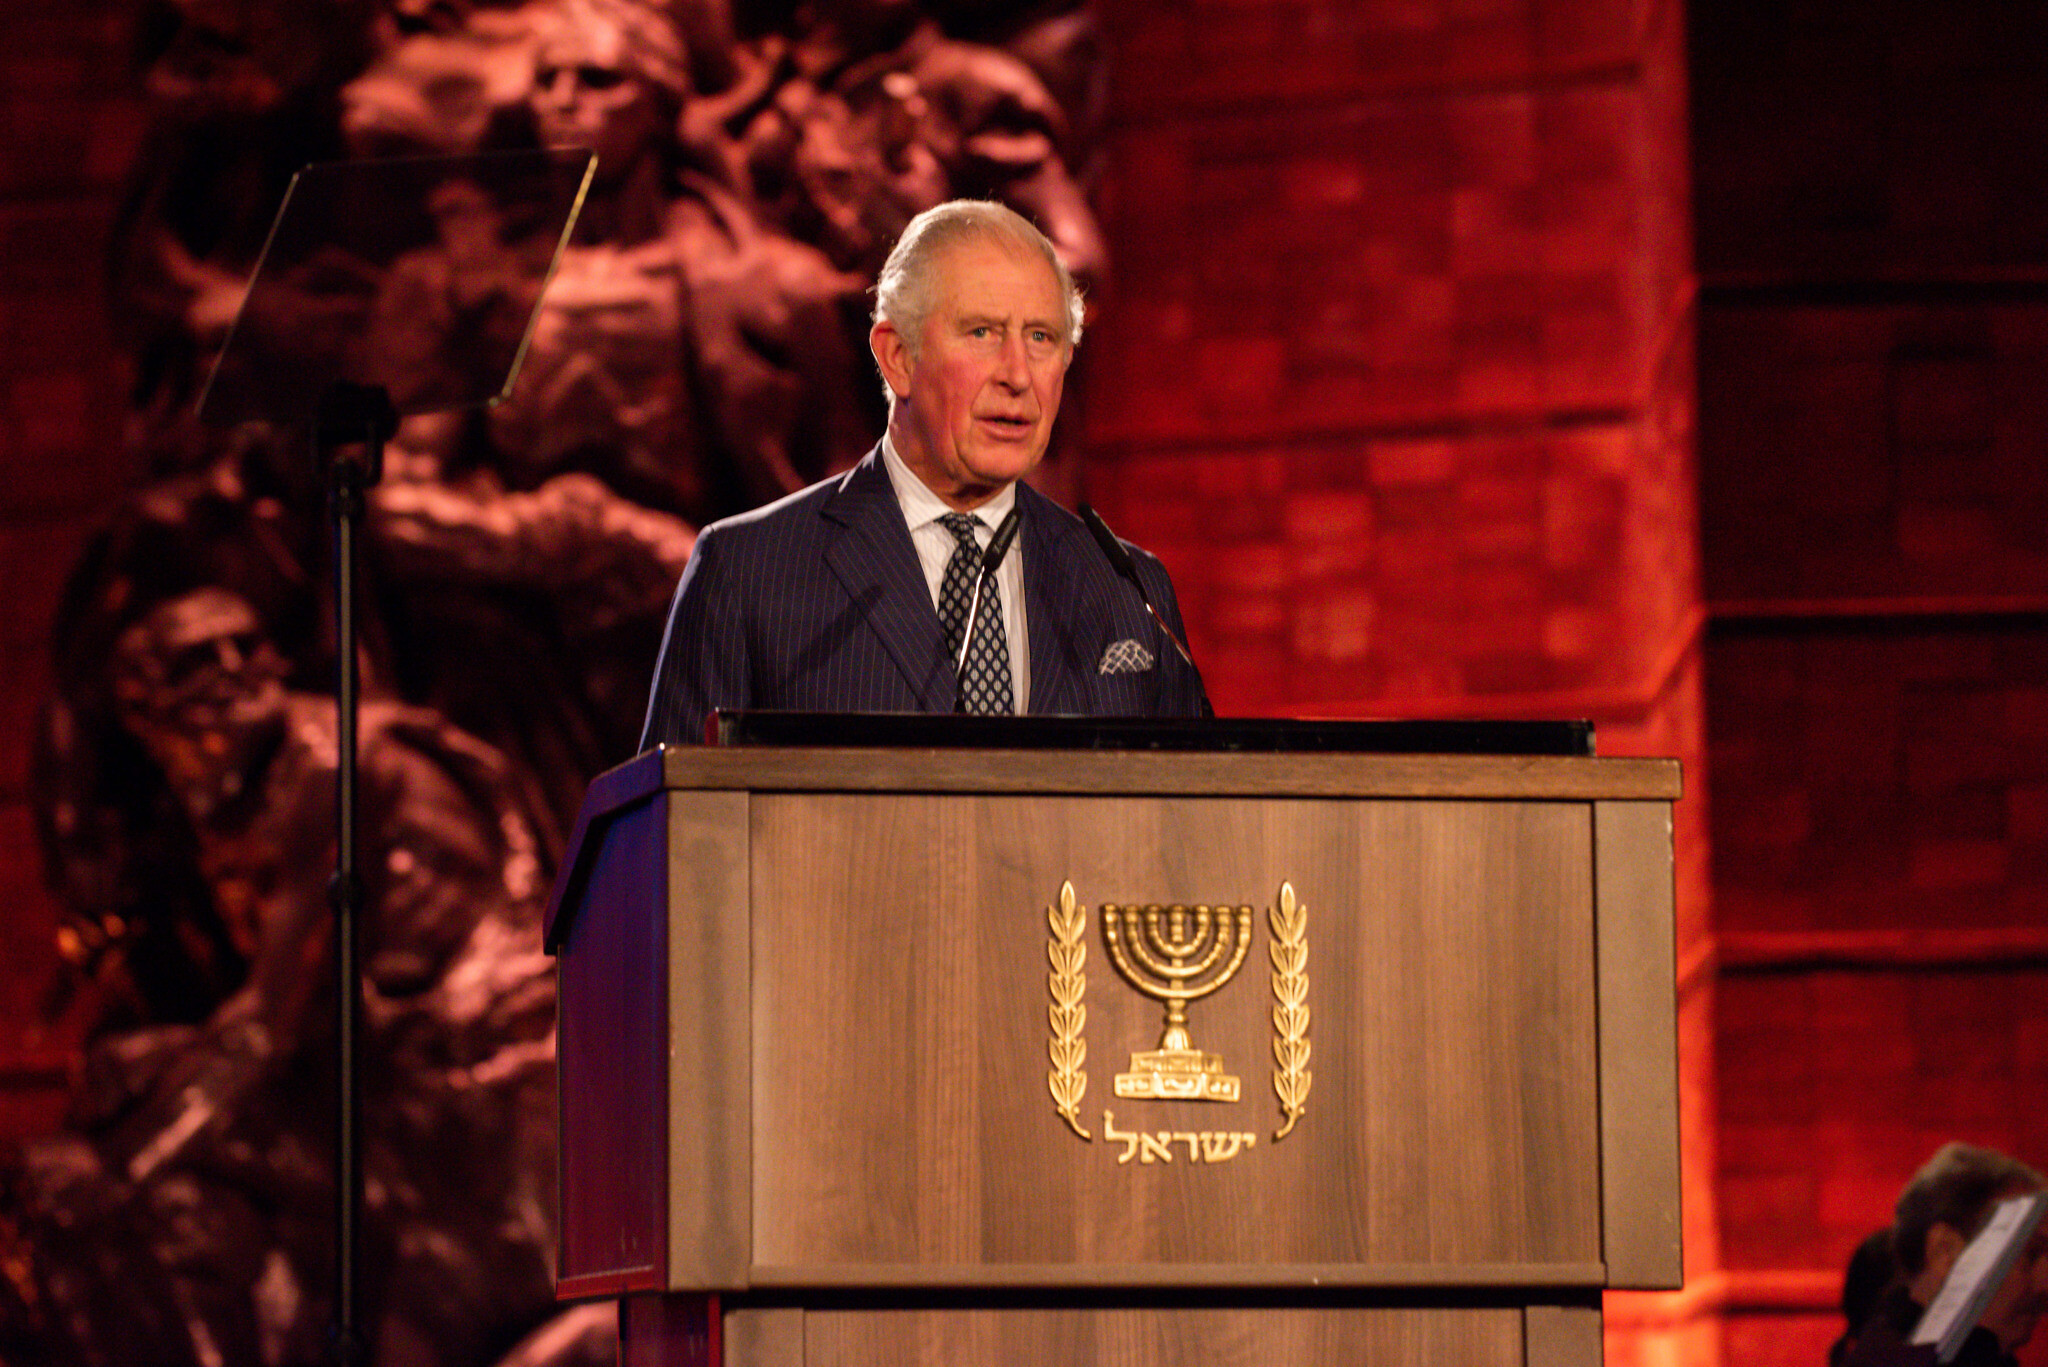 HRH Prine of Wales during his speech at the Yad Vashem Holocoust Forum, January 2020. Credit: Ben Kelmer